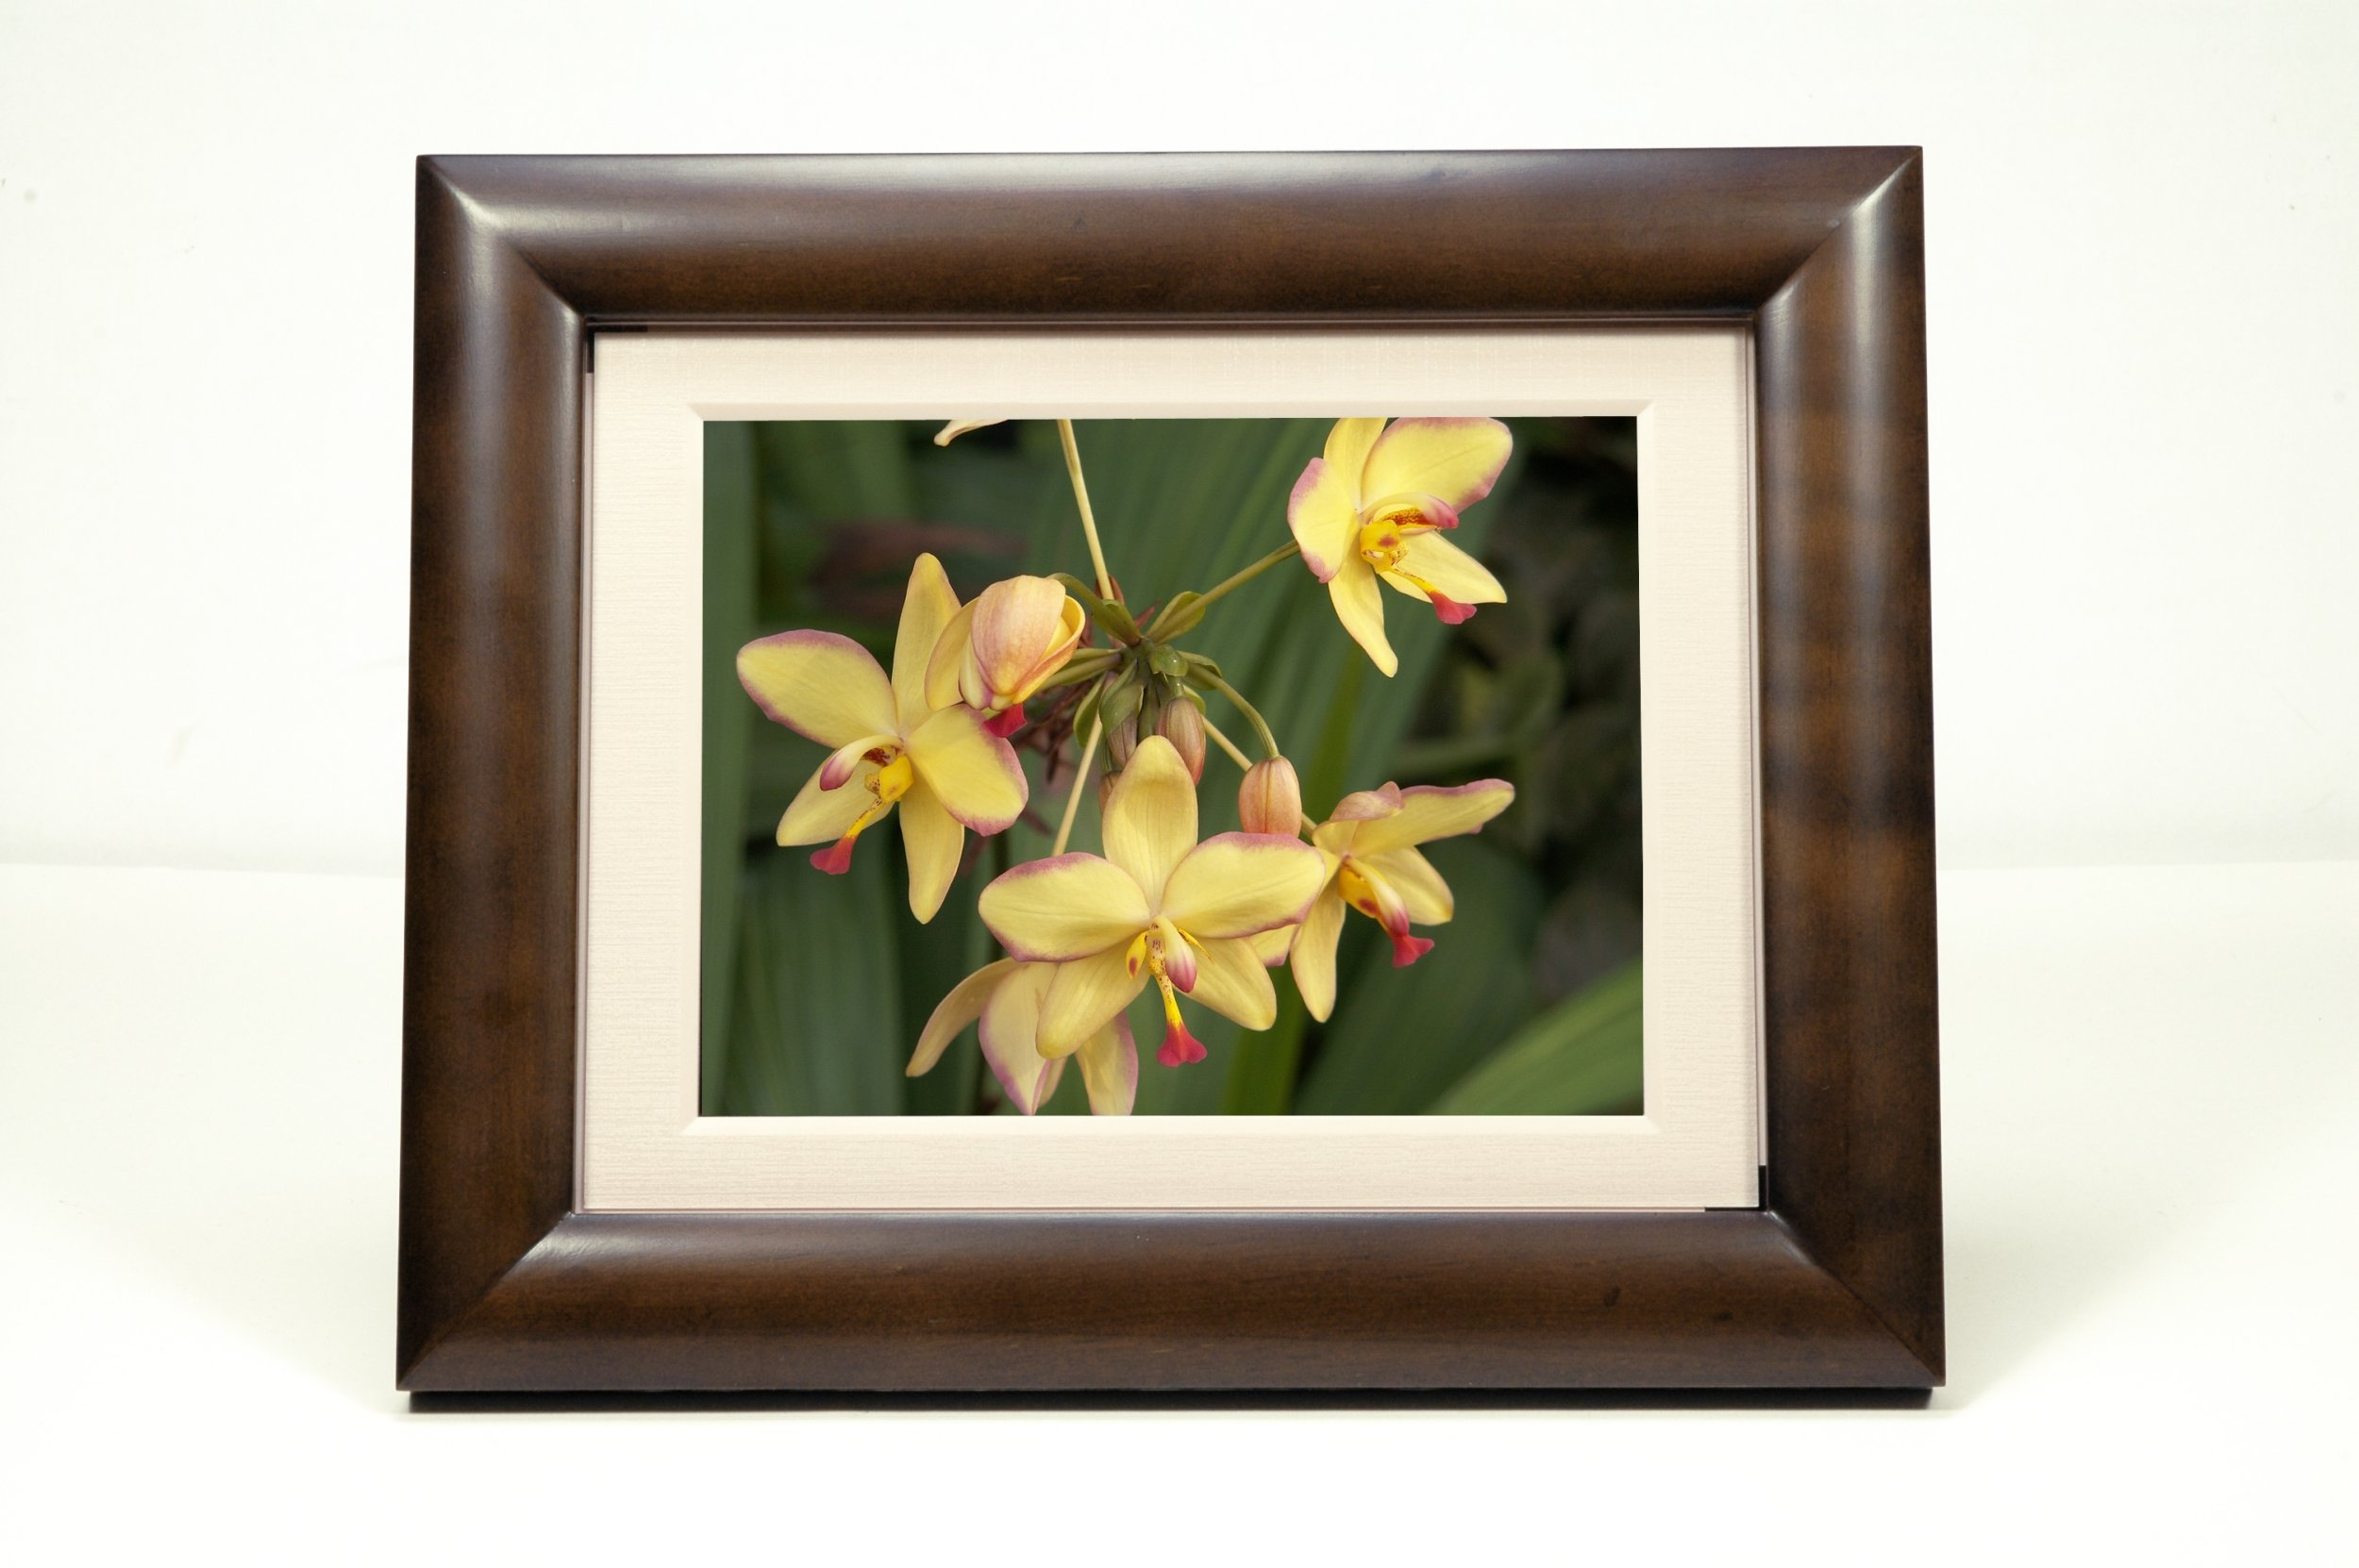 SmartParts SP800 8-Inch Digital Picture Frame